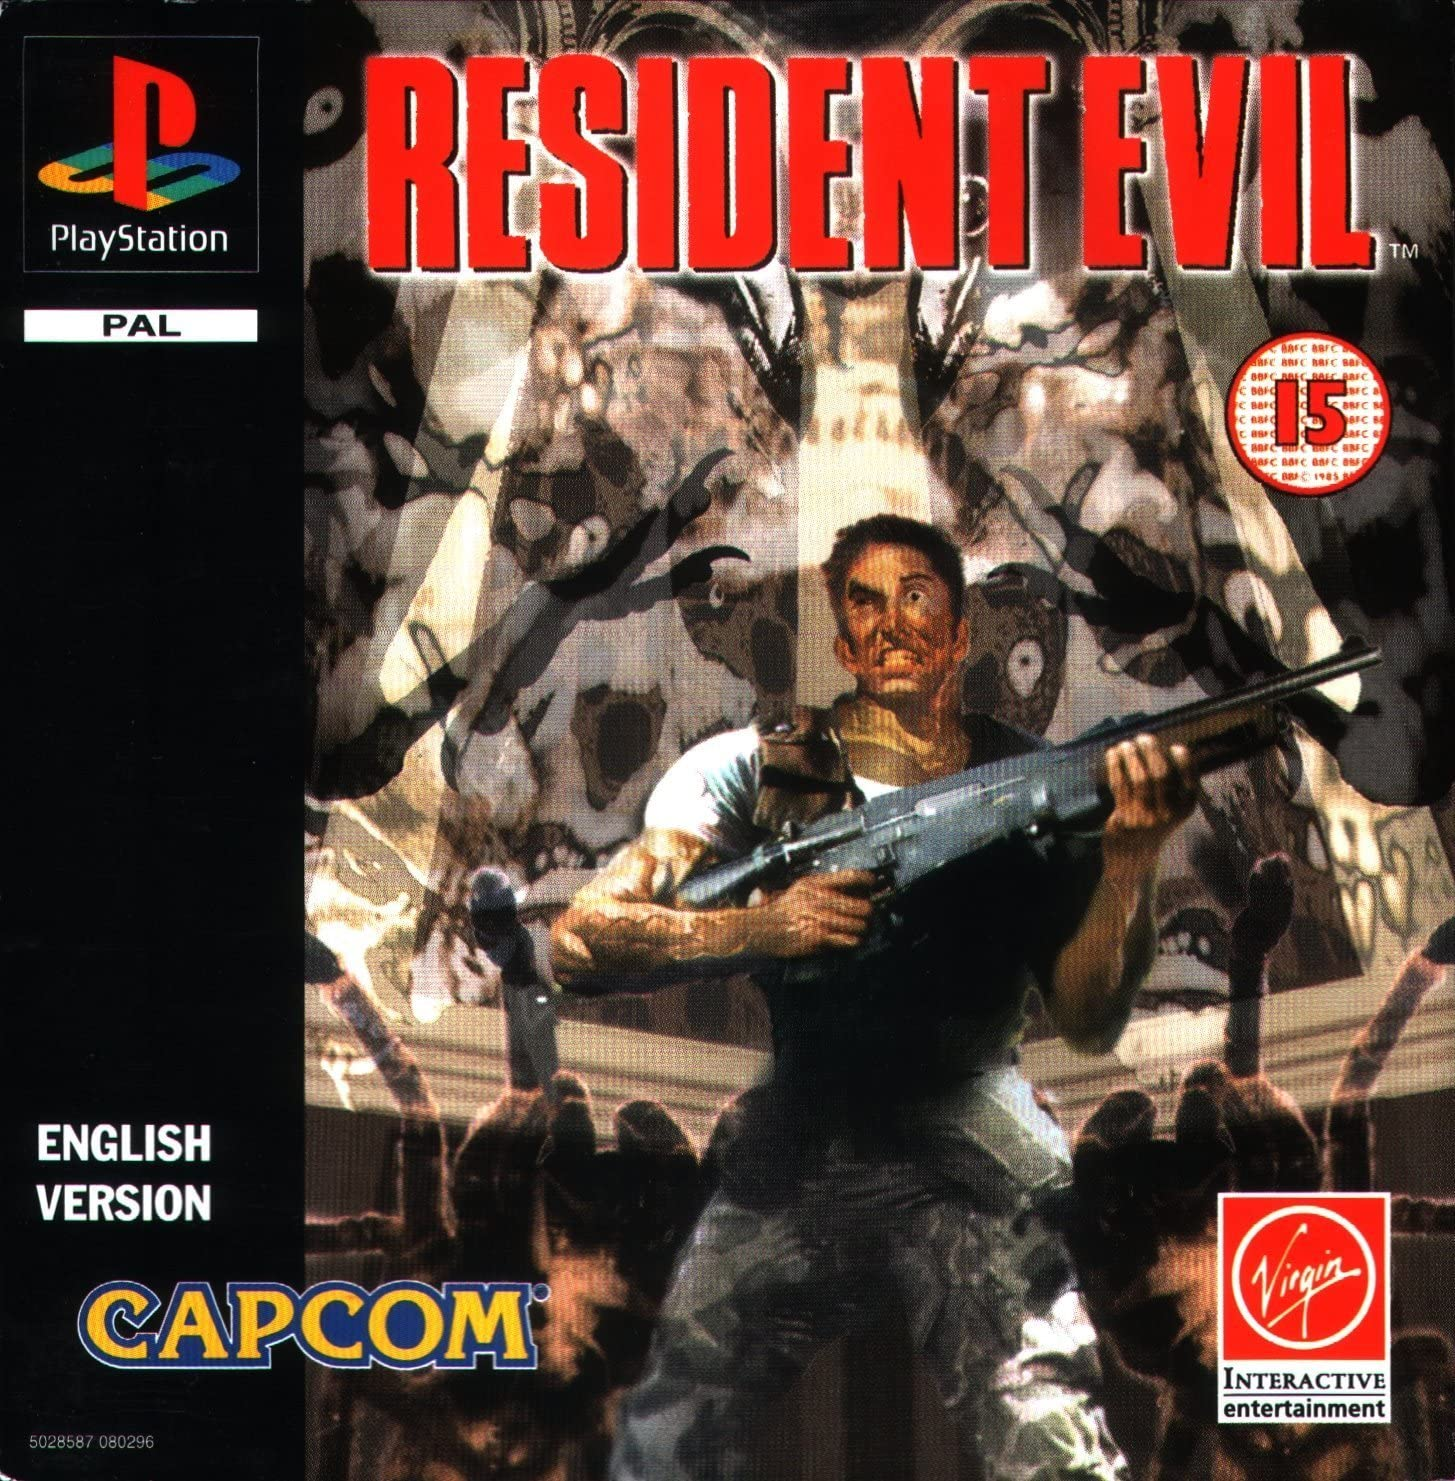 Resident Evil [PlayStation]: Amazon.co.uk: PC & Video Games